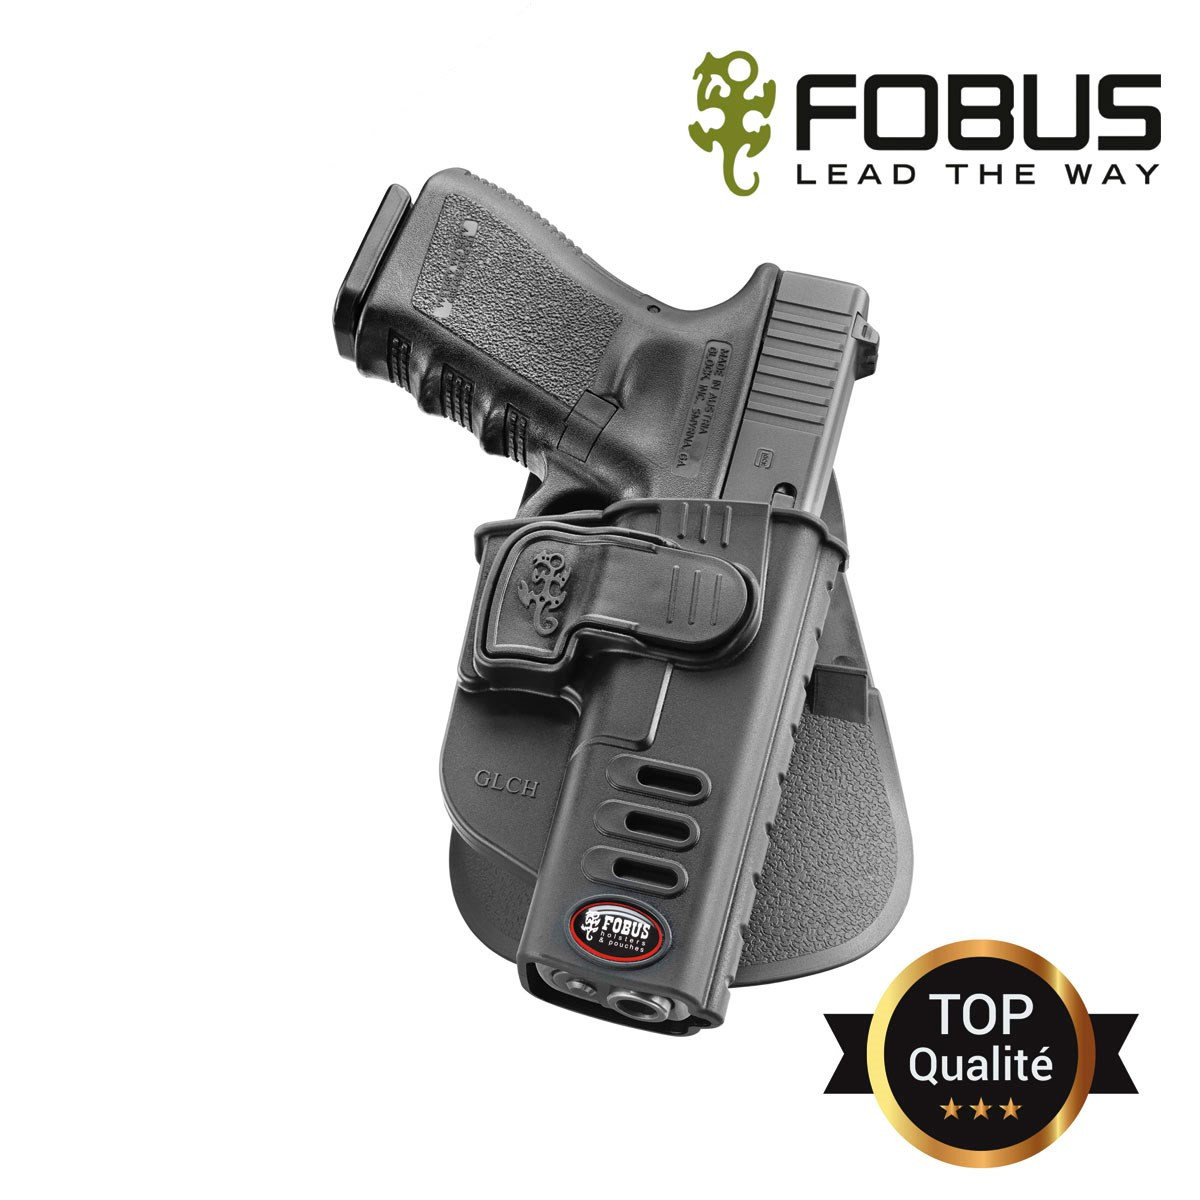 Holster rigide polymere pour Glock retention active index